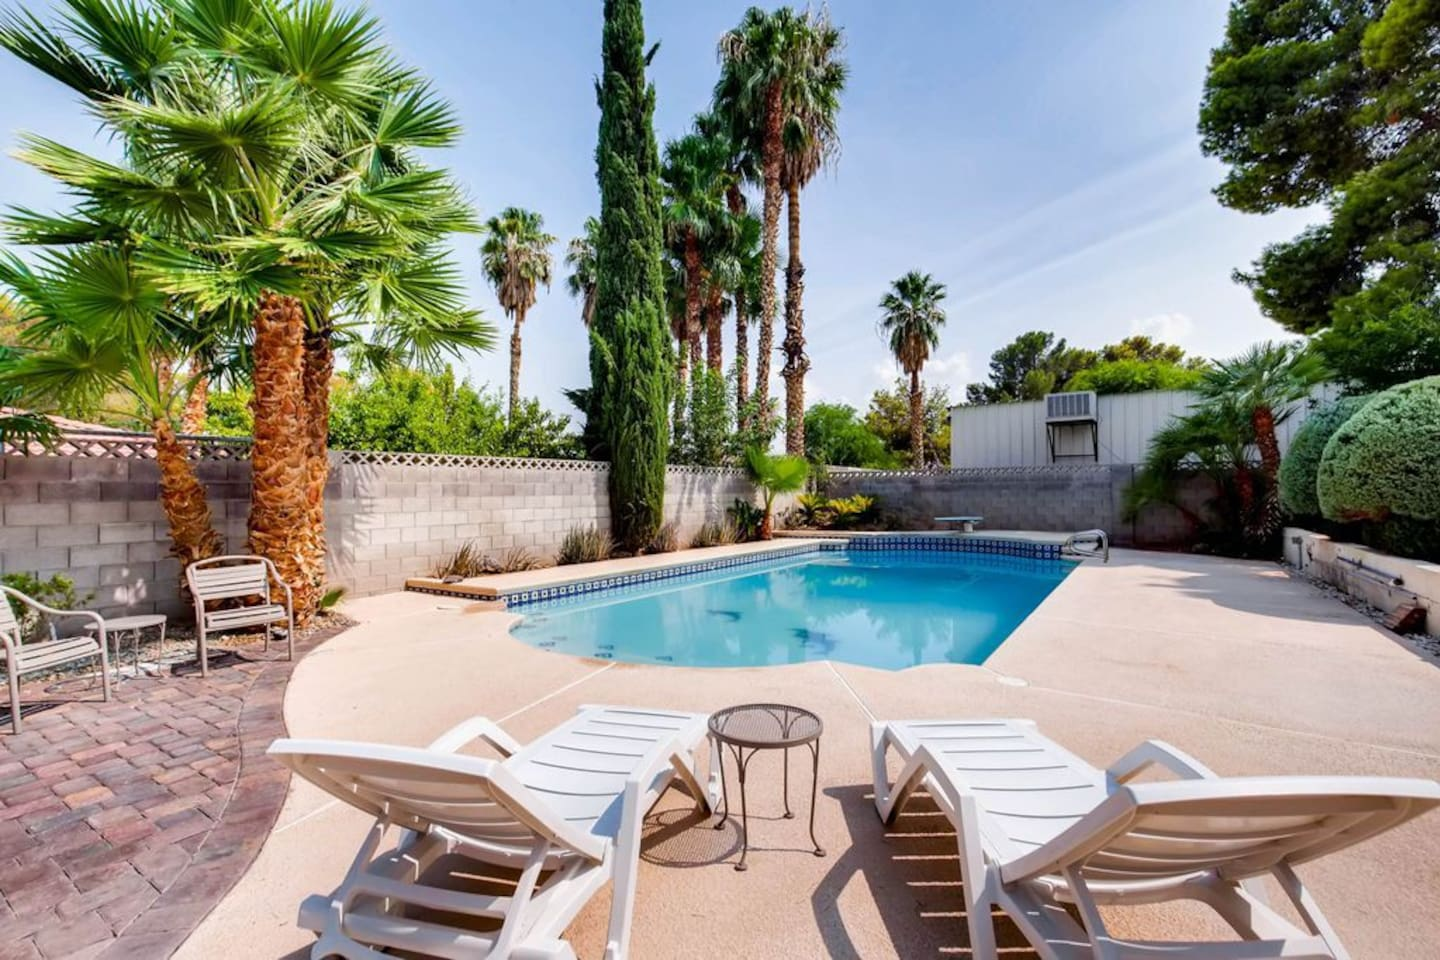 Fun in the sun! Our beautiful outdoor hang out area features POOL at its finest! a phenomenal views, patio furniture, and more!